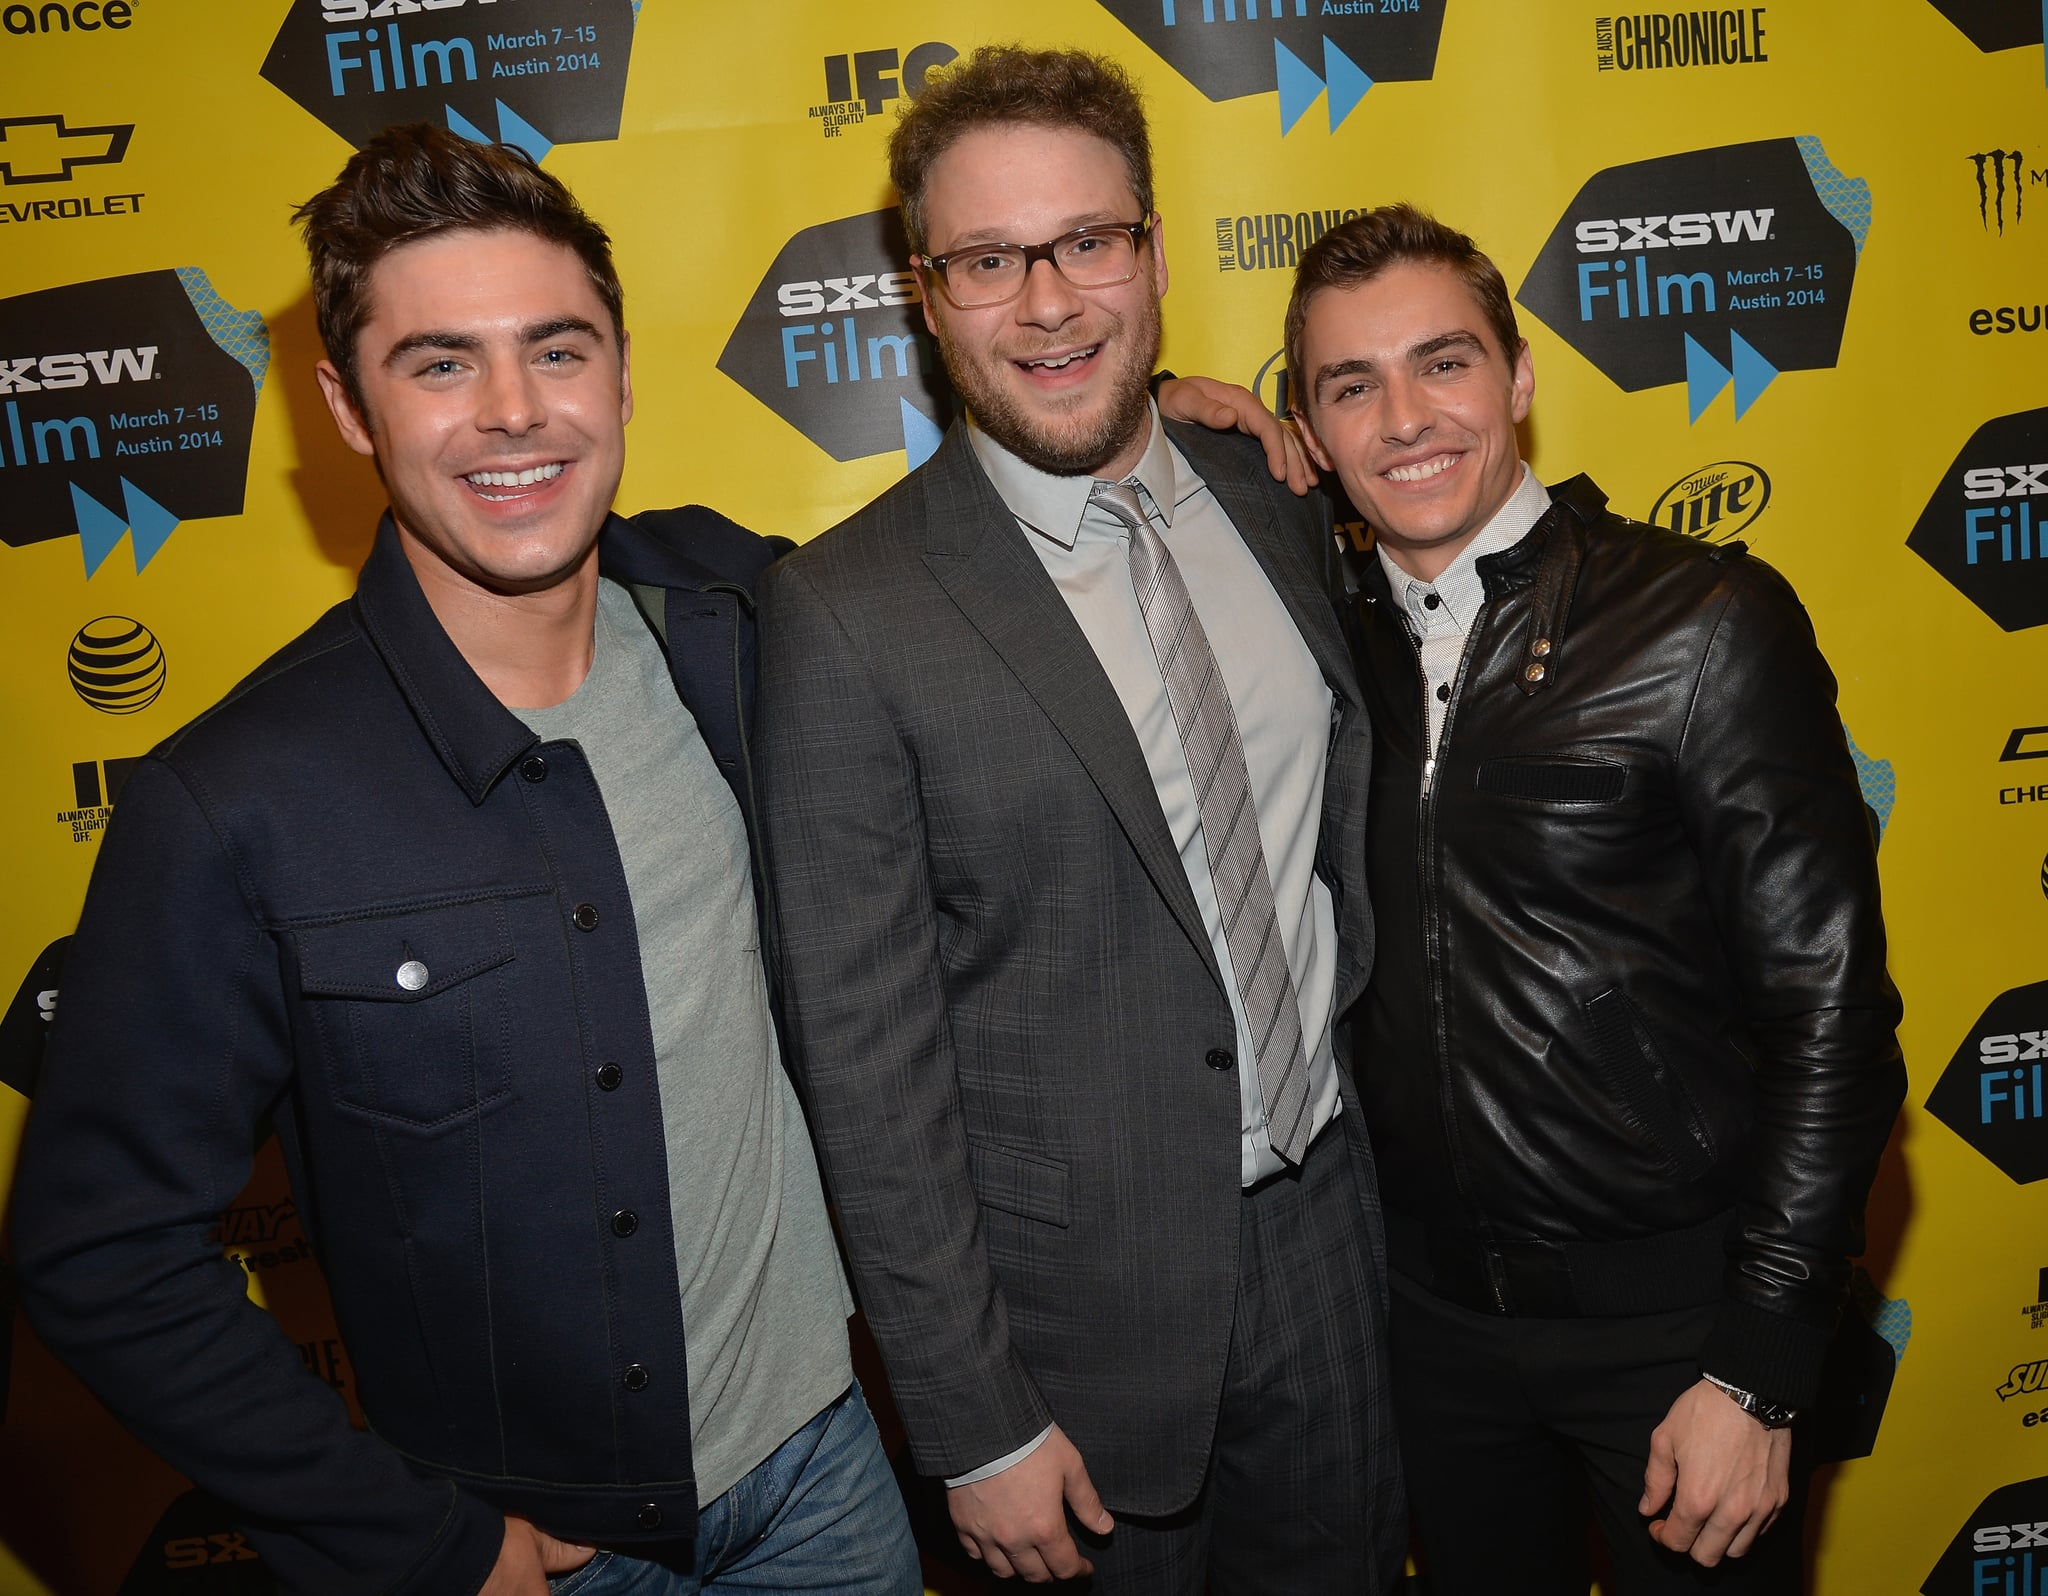 Zac Efron, Seth Rogen, and Dave Franco were all smiles on Saturday.